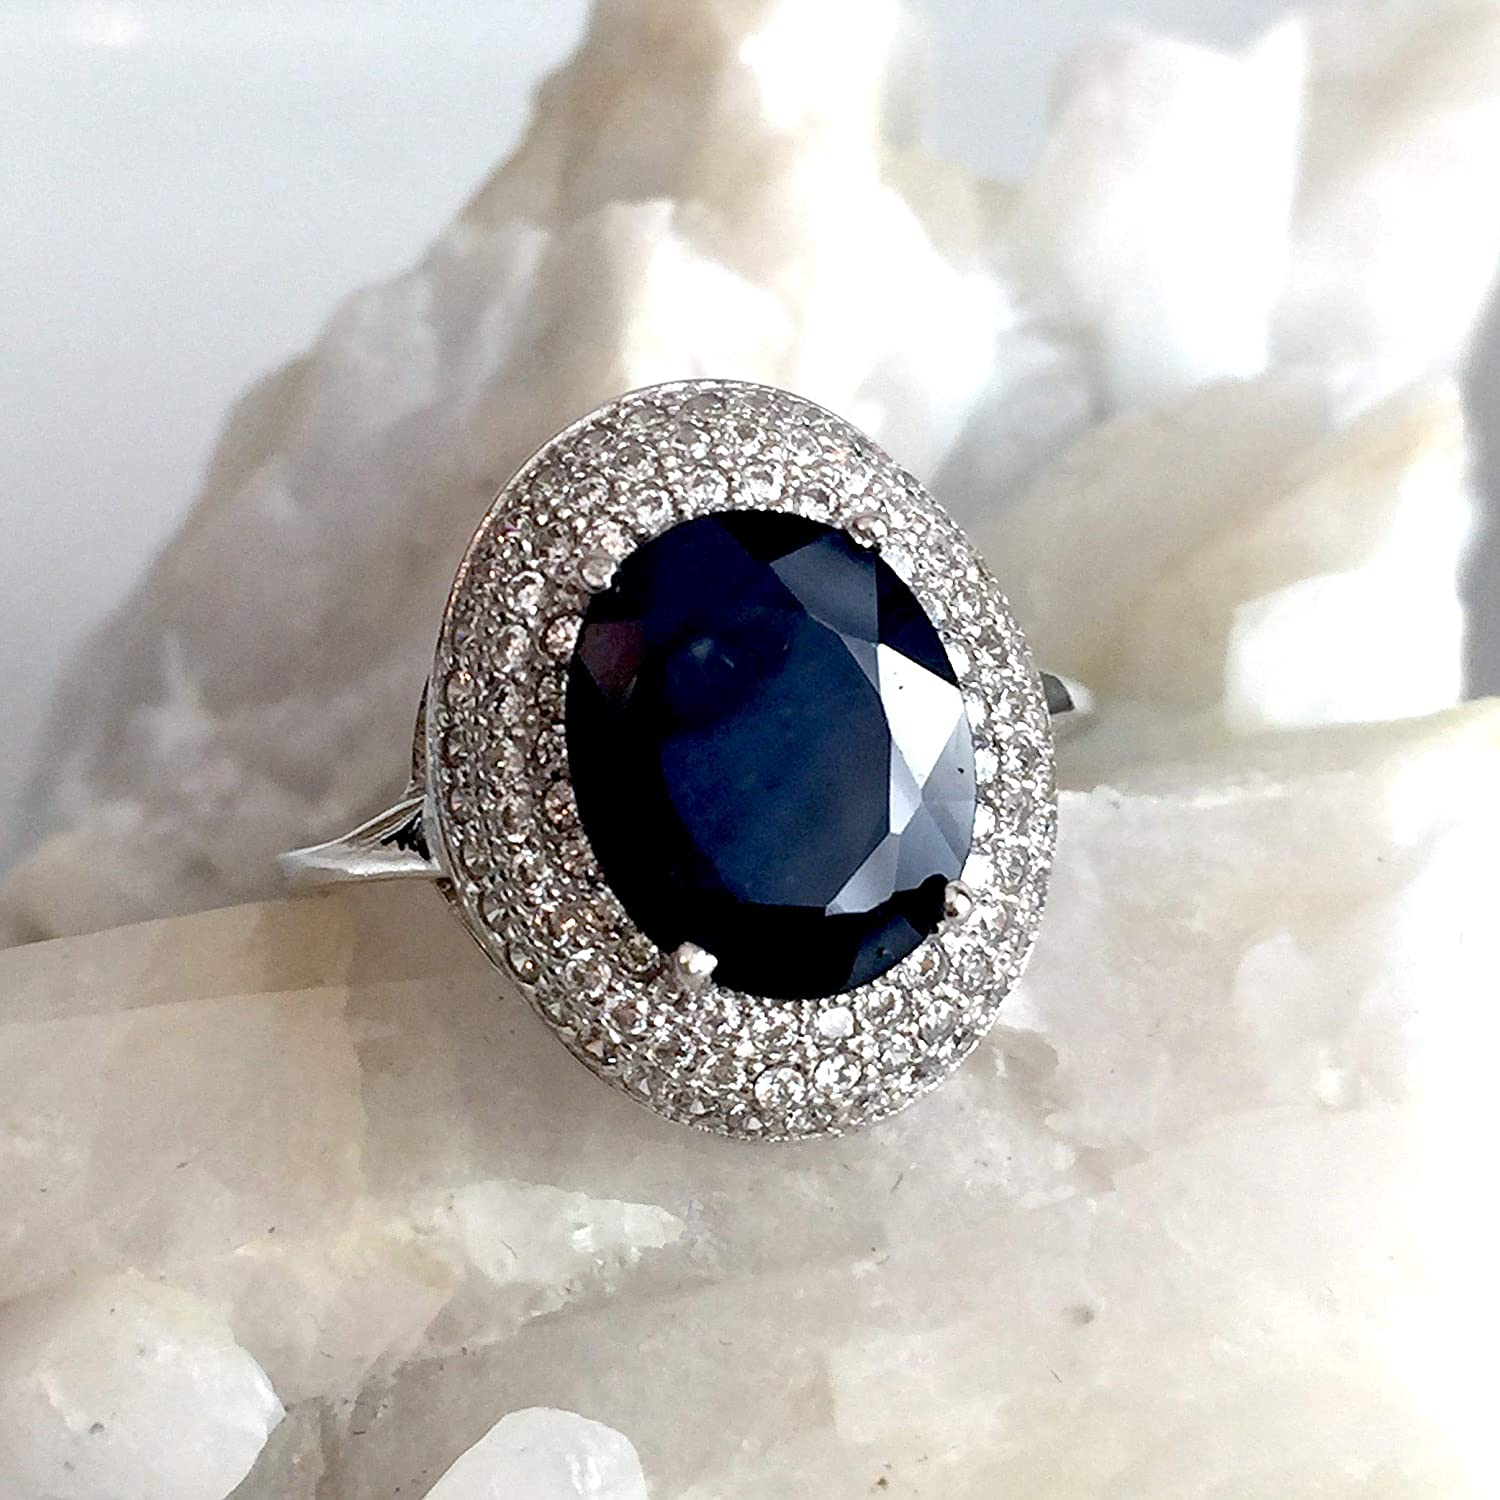 7CT Blue Sapphire /& Topaz 925 Solid Sterling Silver Ring Jewelry Sz 6,7,8 OC8